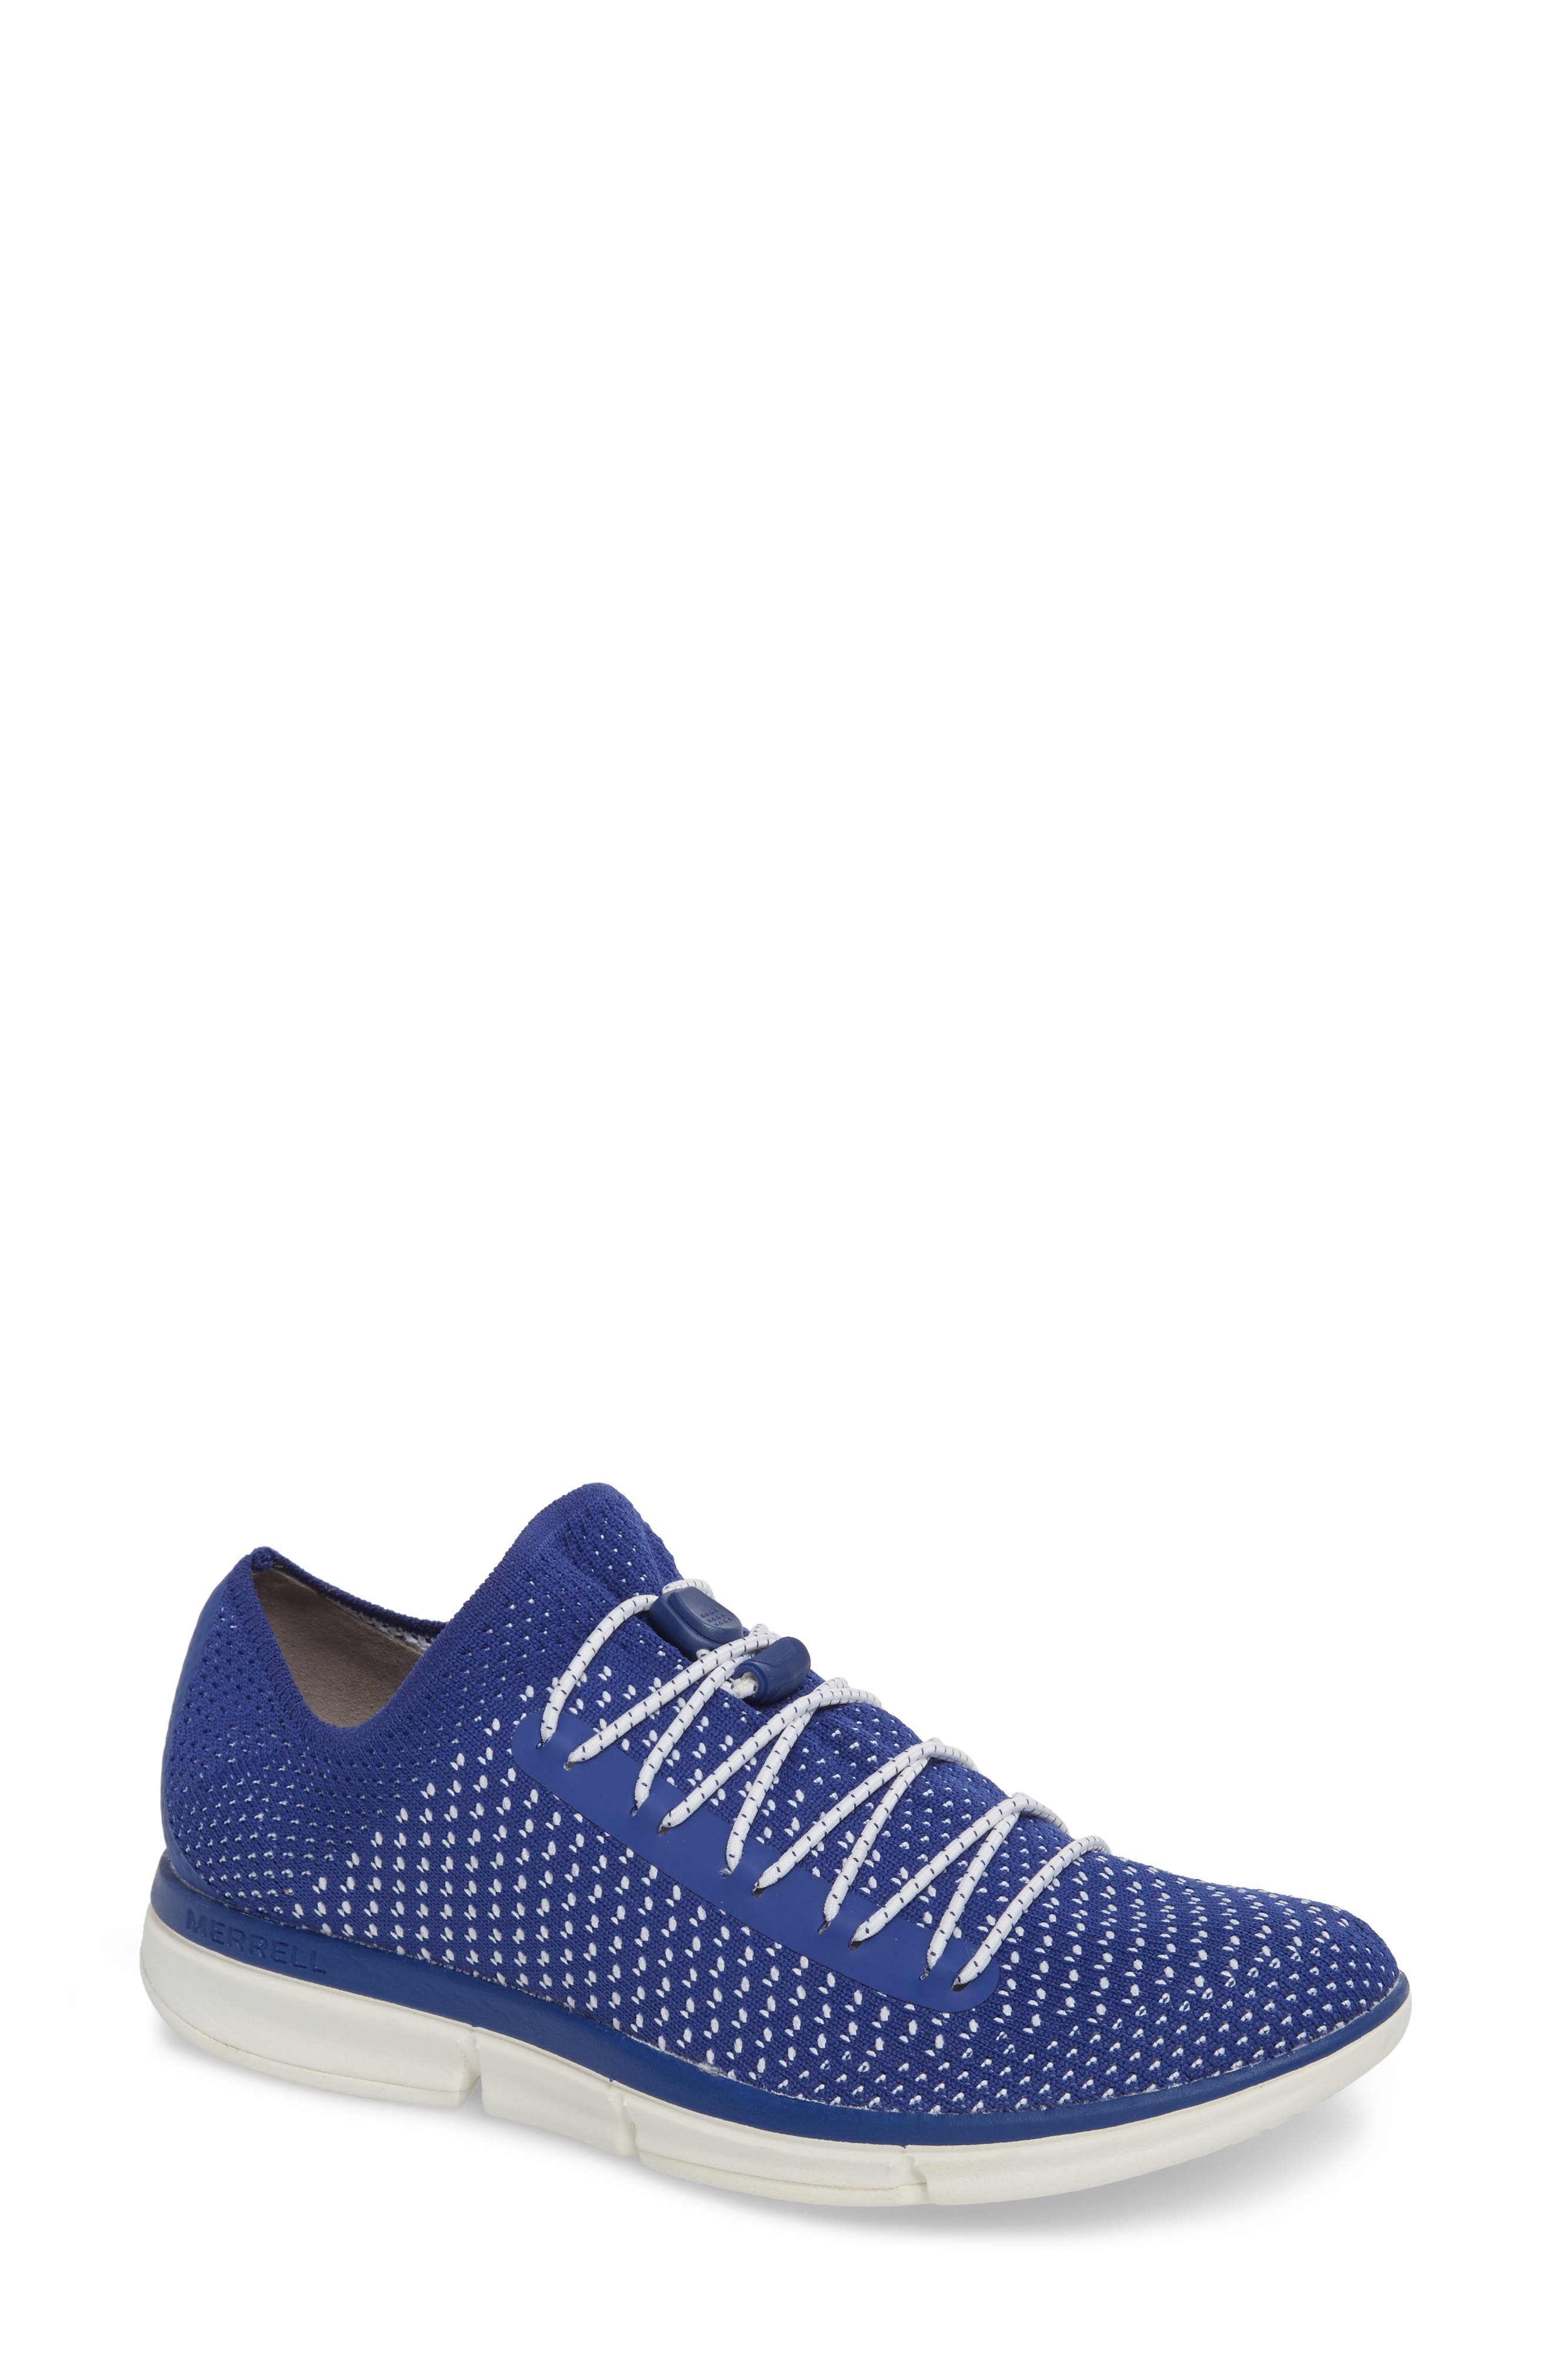 Zoe Sojourn Lace Knit Sneaker,                             Main thumbnail 1, color,                             Sodalite